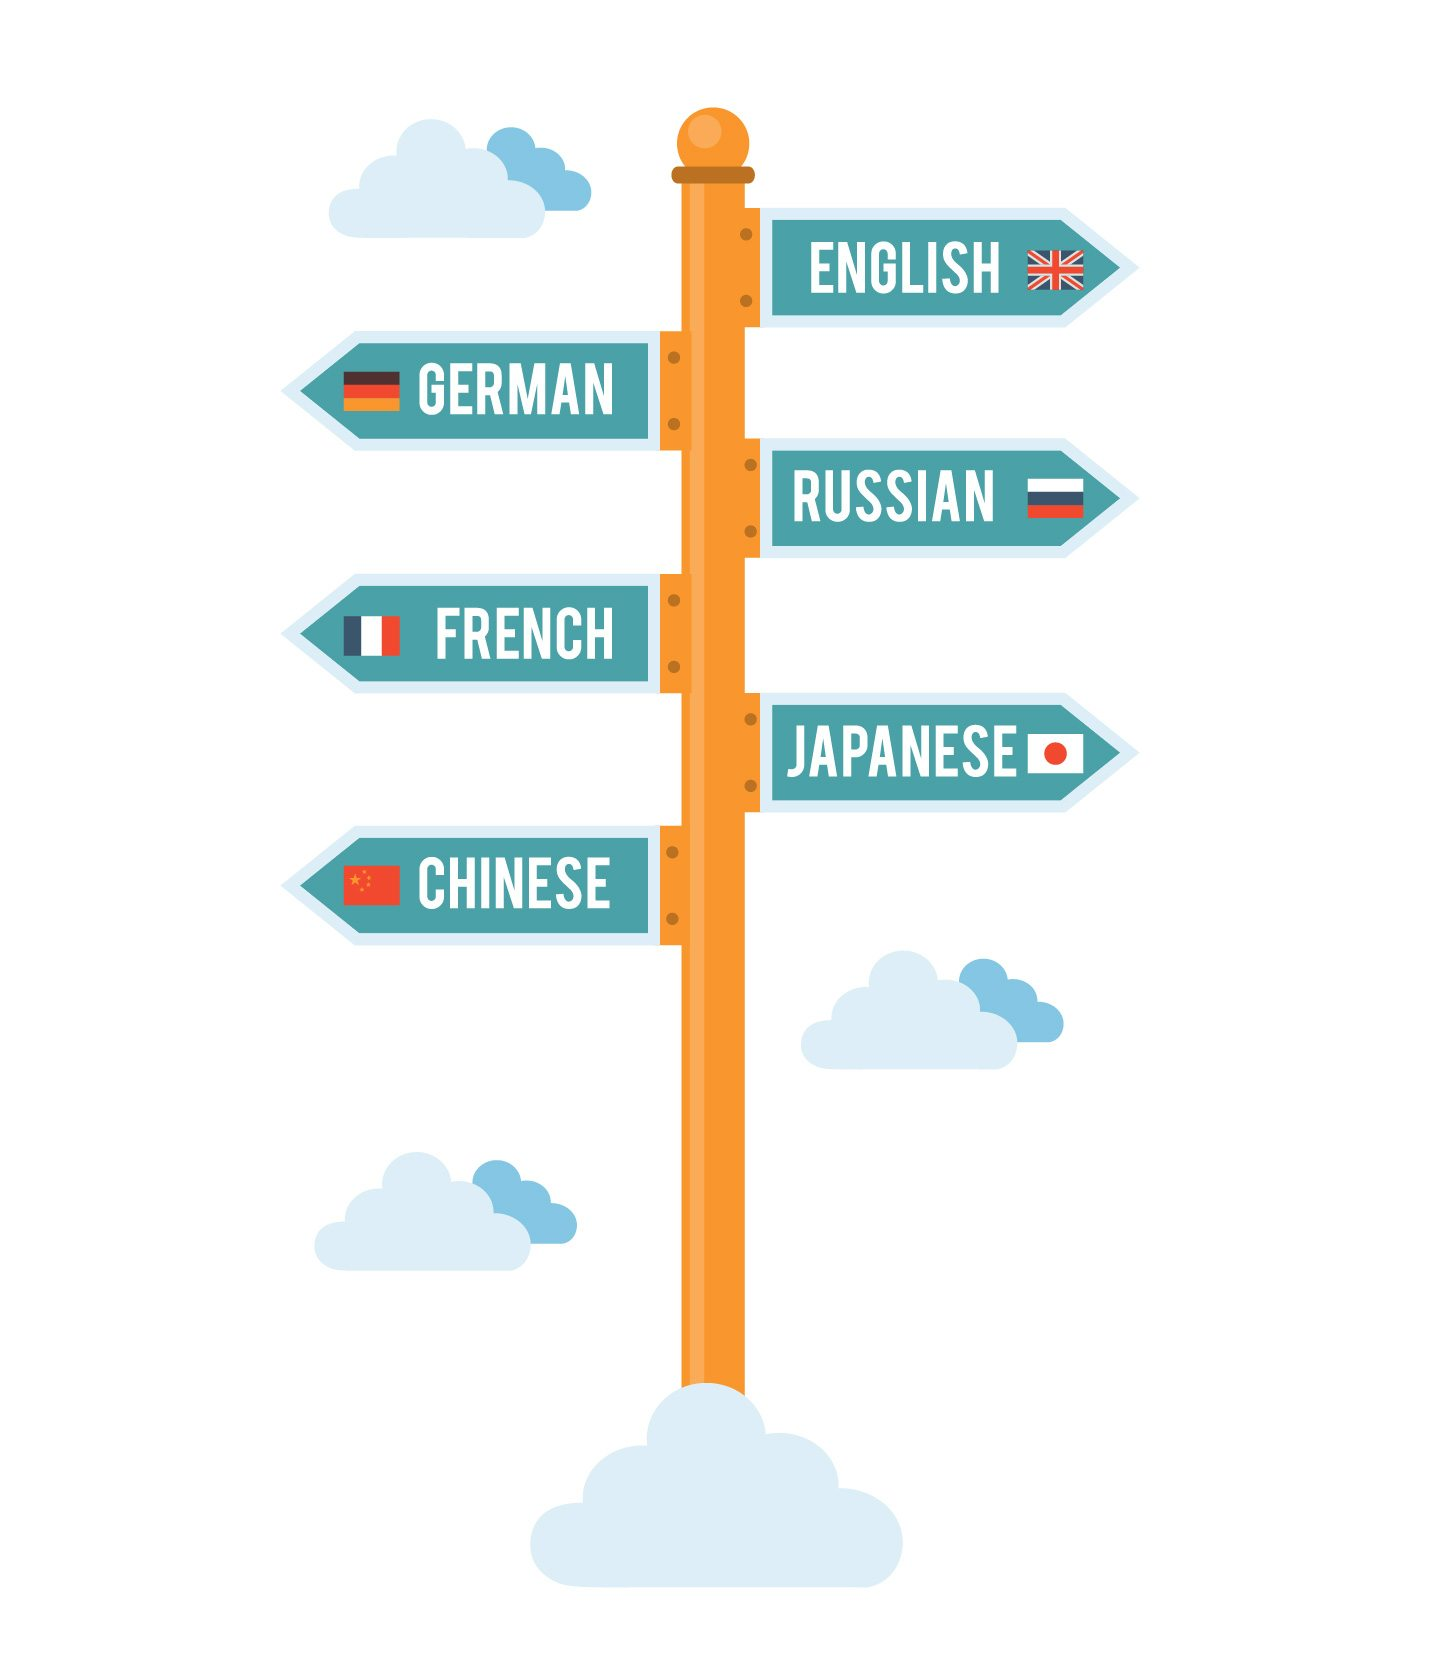 Translation Technology Image